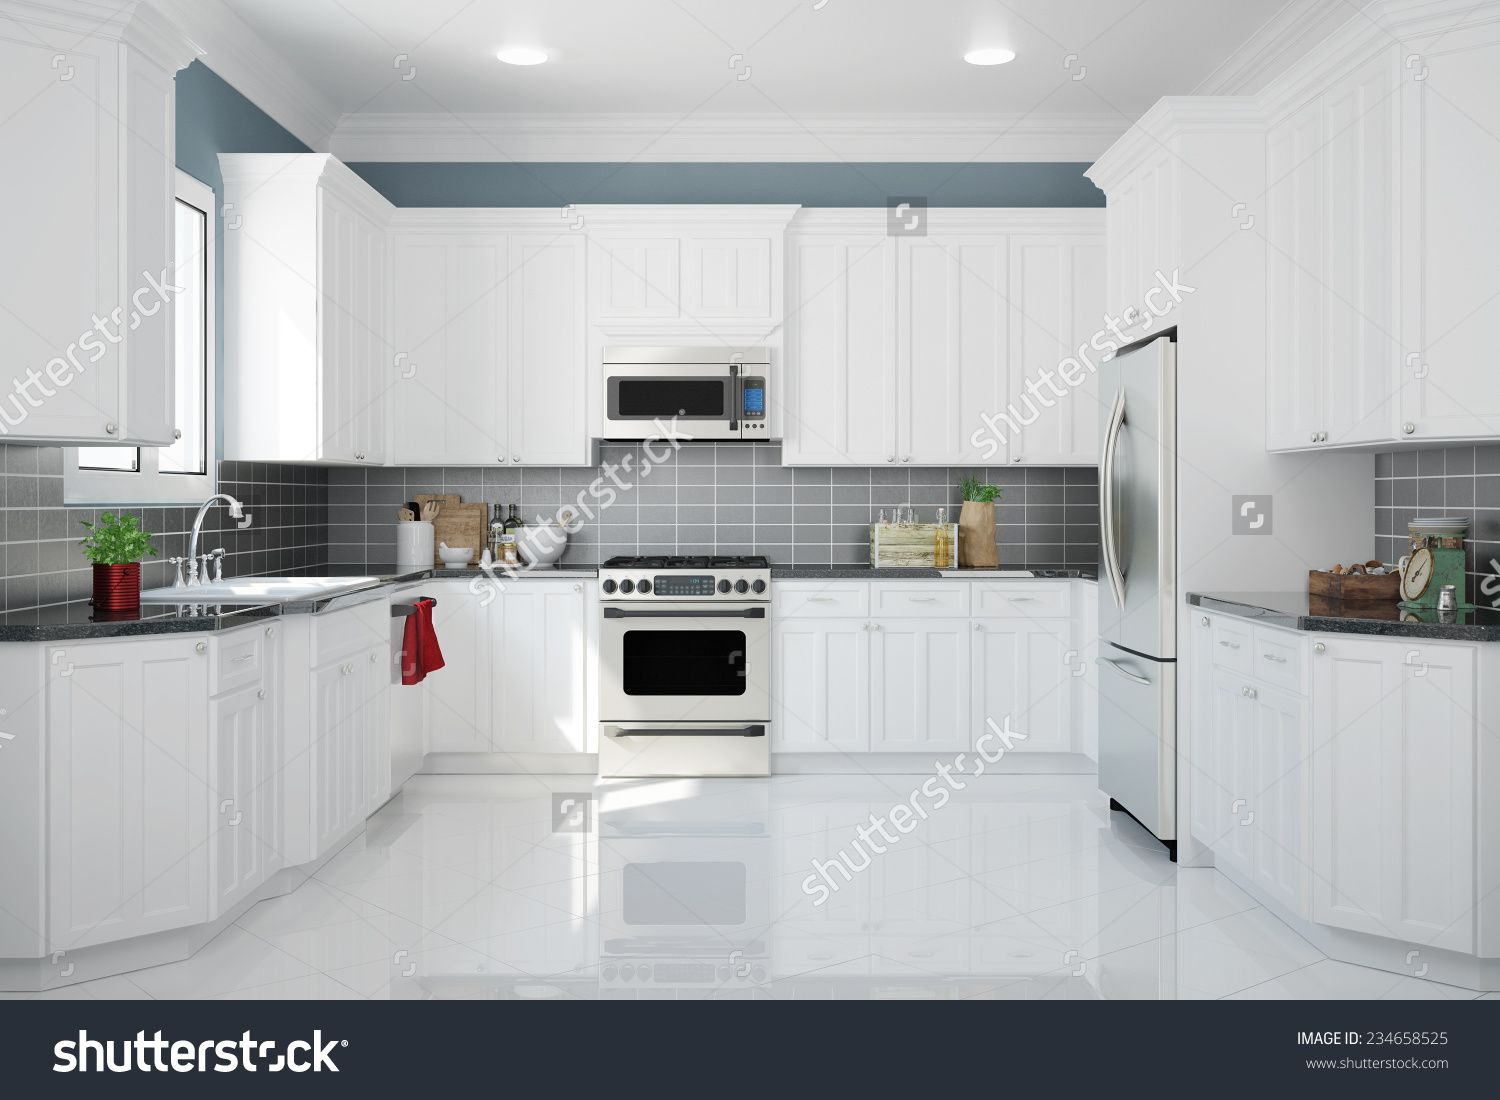 kitchen tiles for white kitchen. Explore Bright Kitchens  White and more stock photo interior of new white kitchen with kitchenware